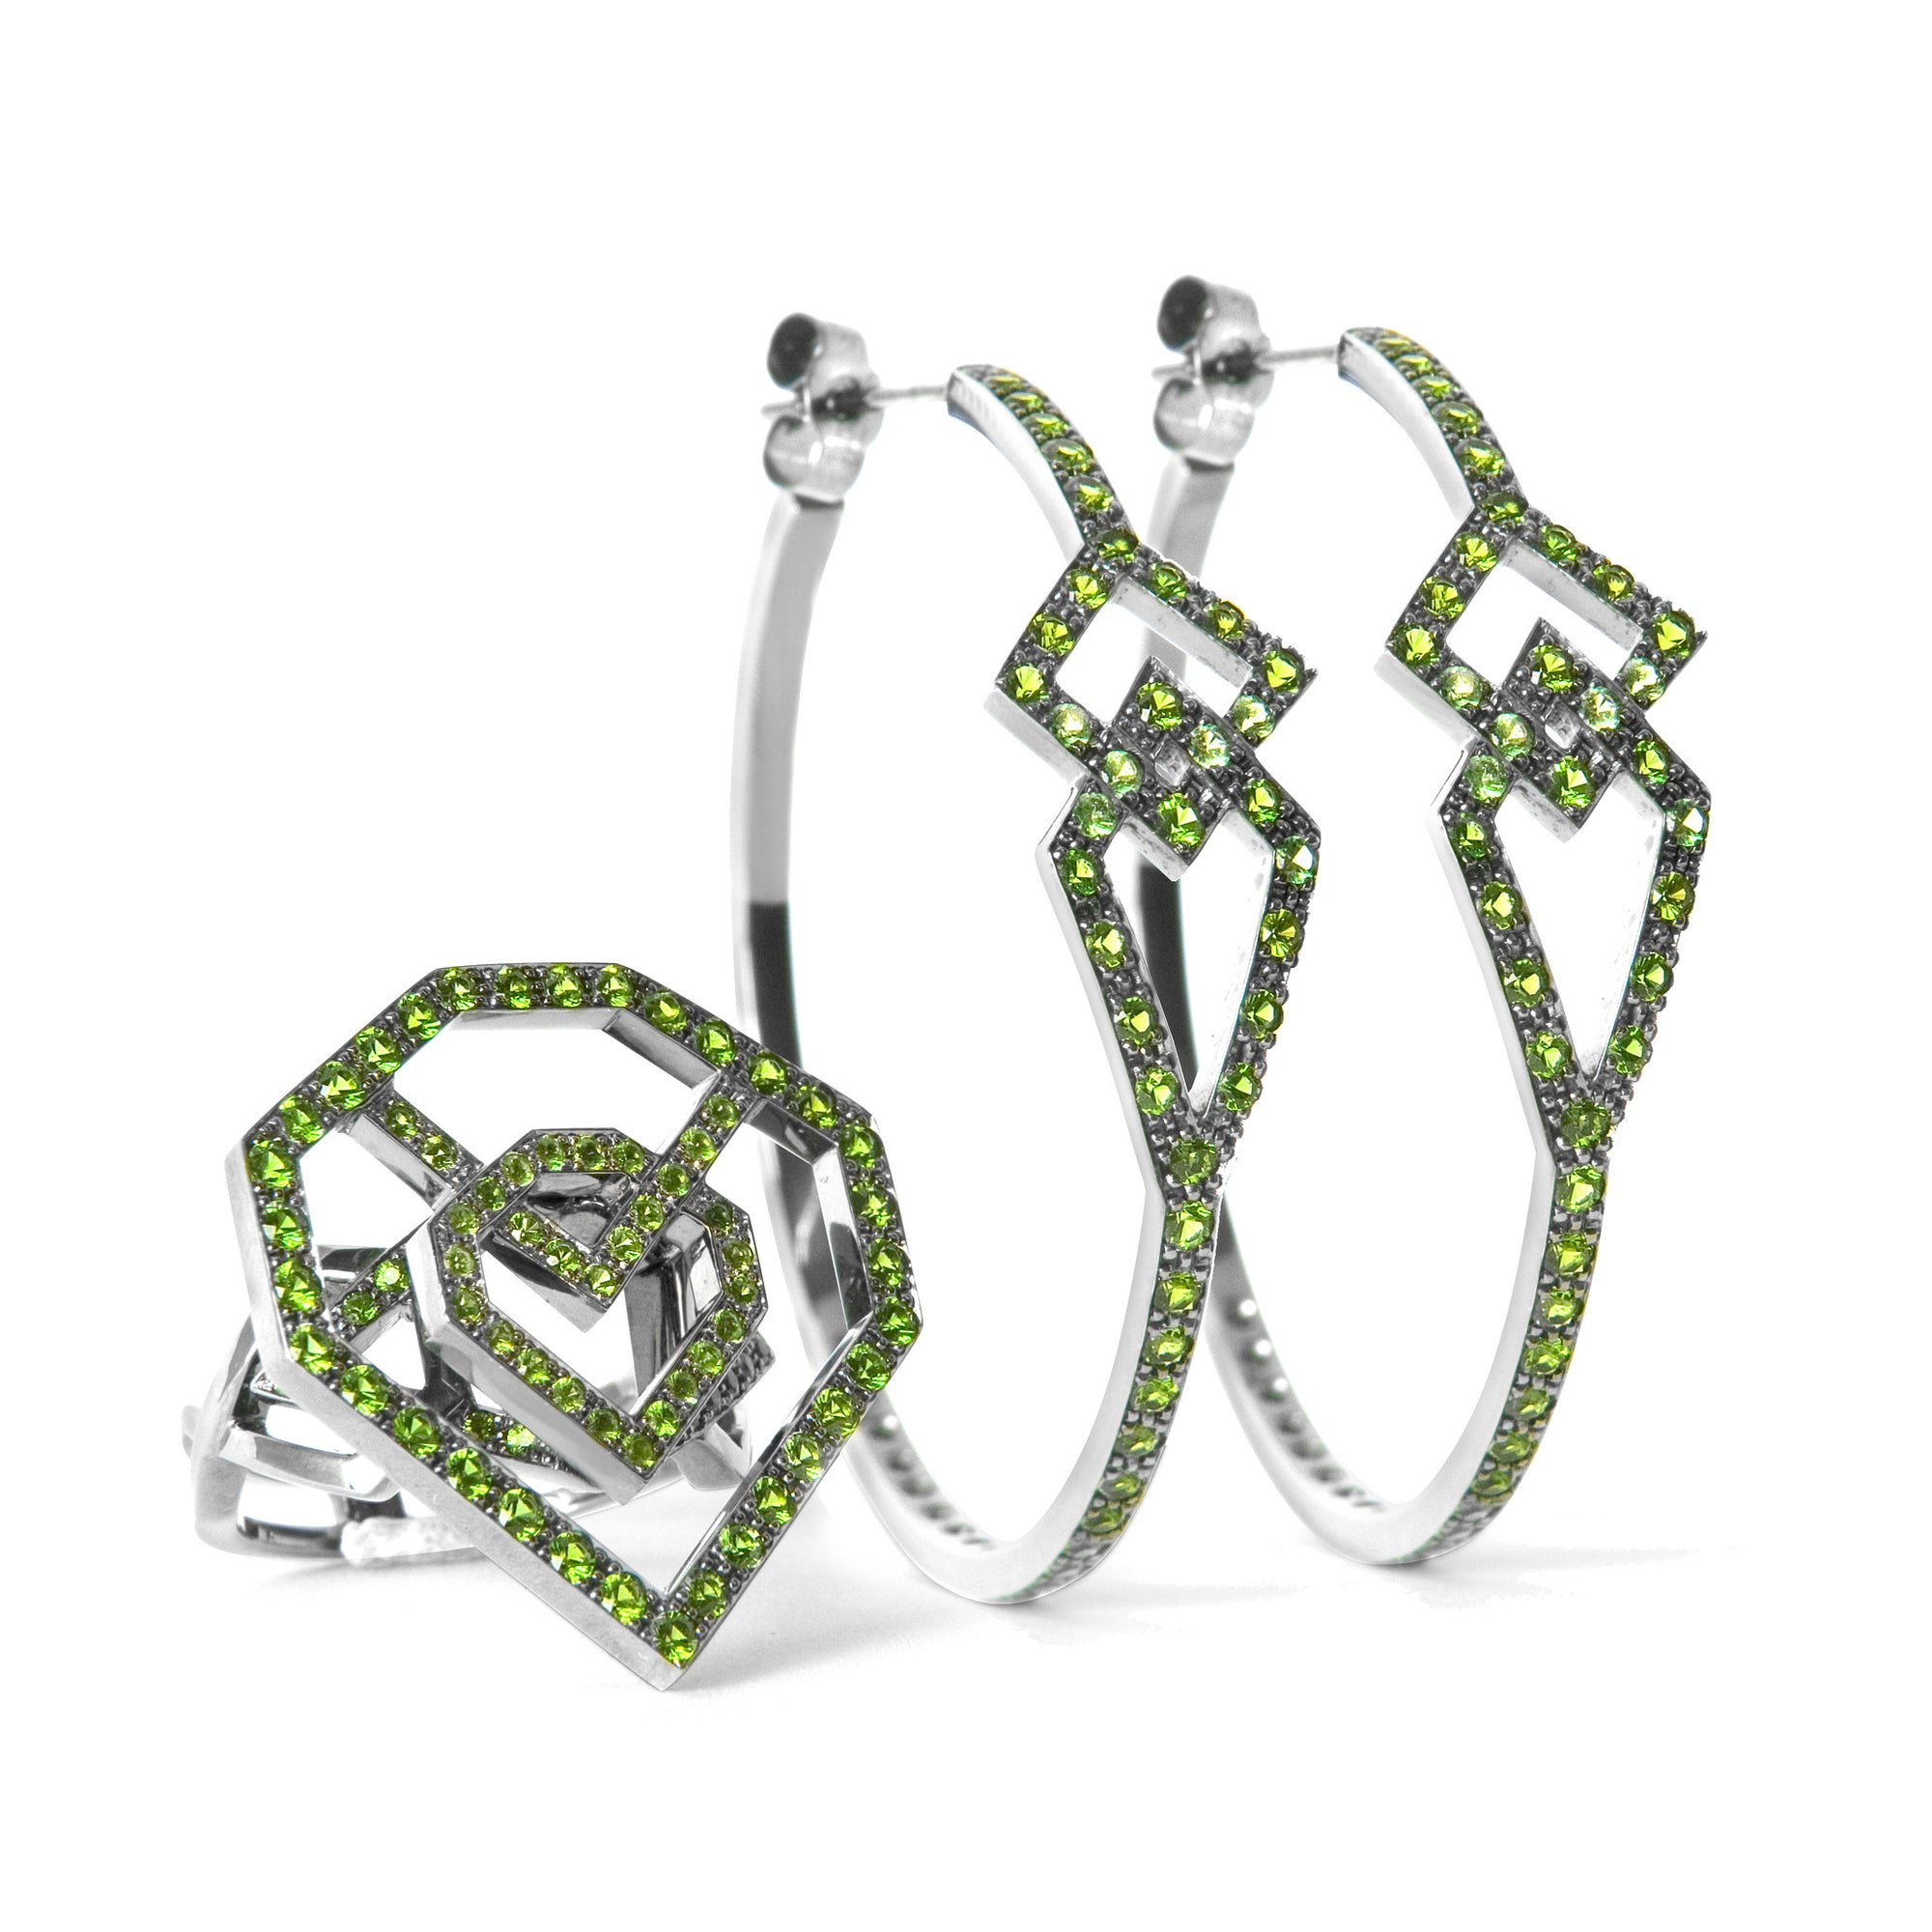 Bespoke Jewellery - Alice Alhambra Diopside Black Gold Earrings - Arabel Lebrusan